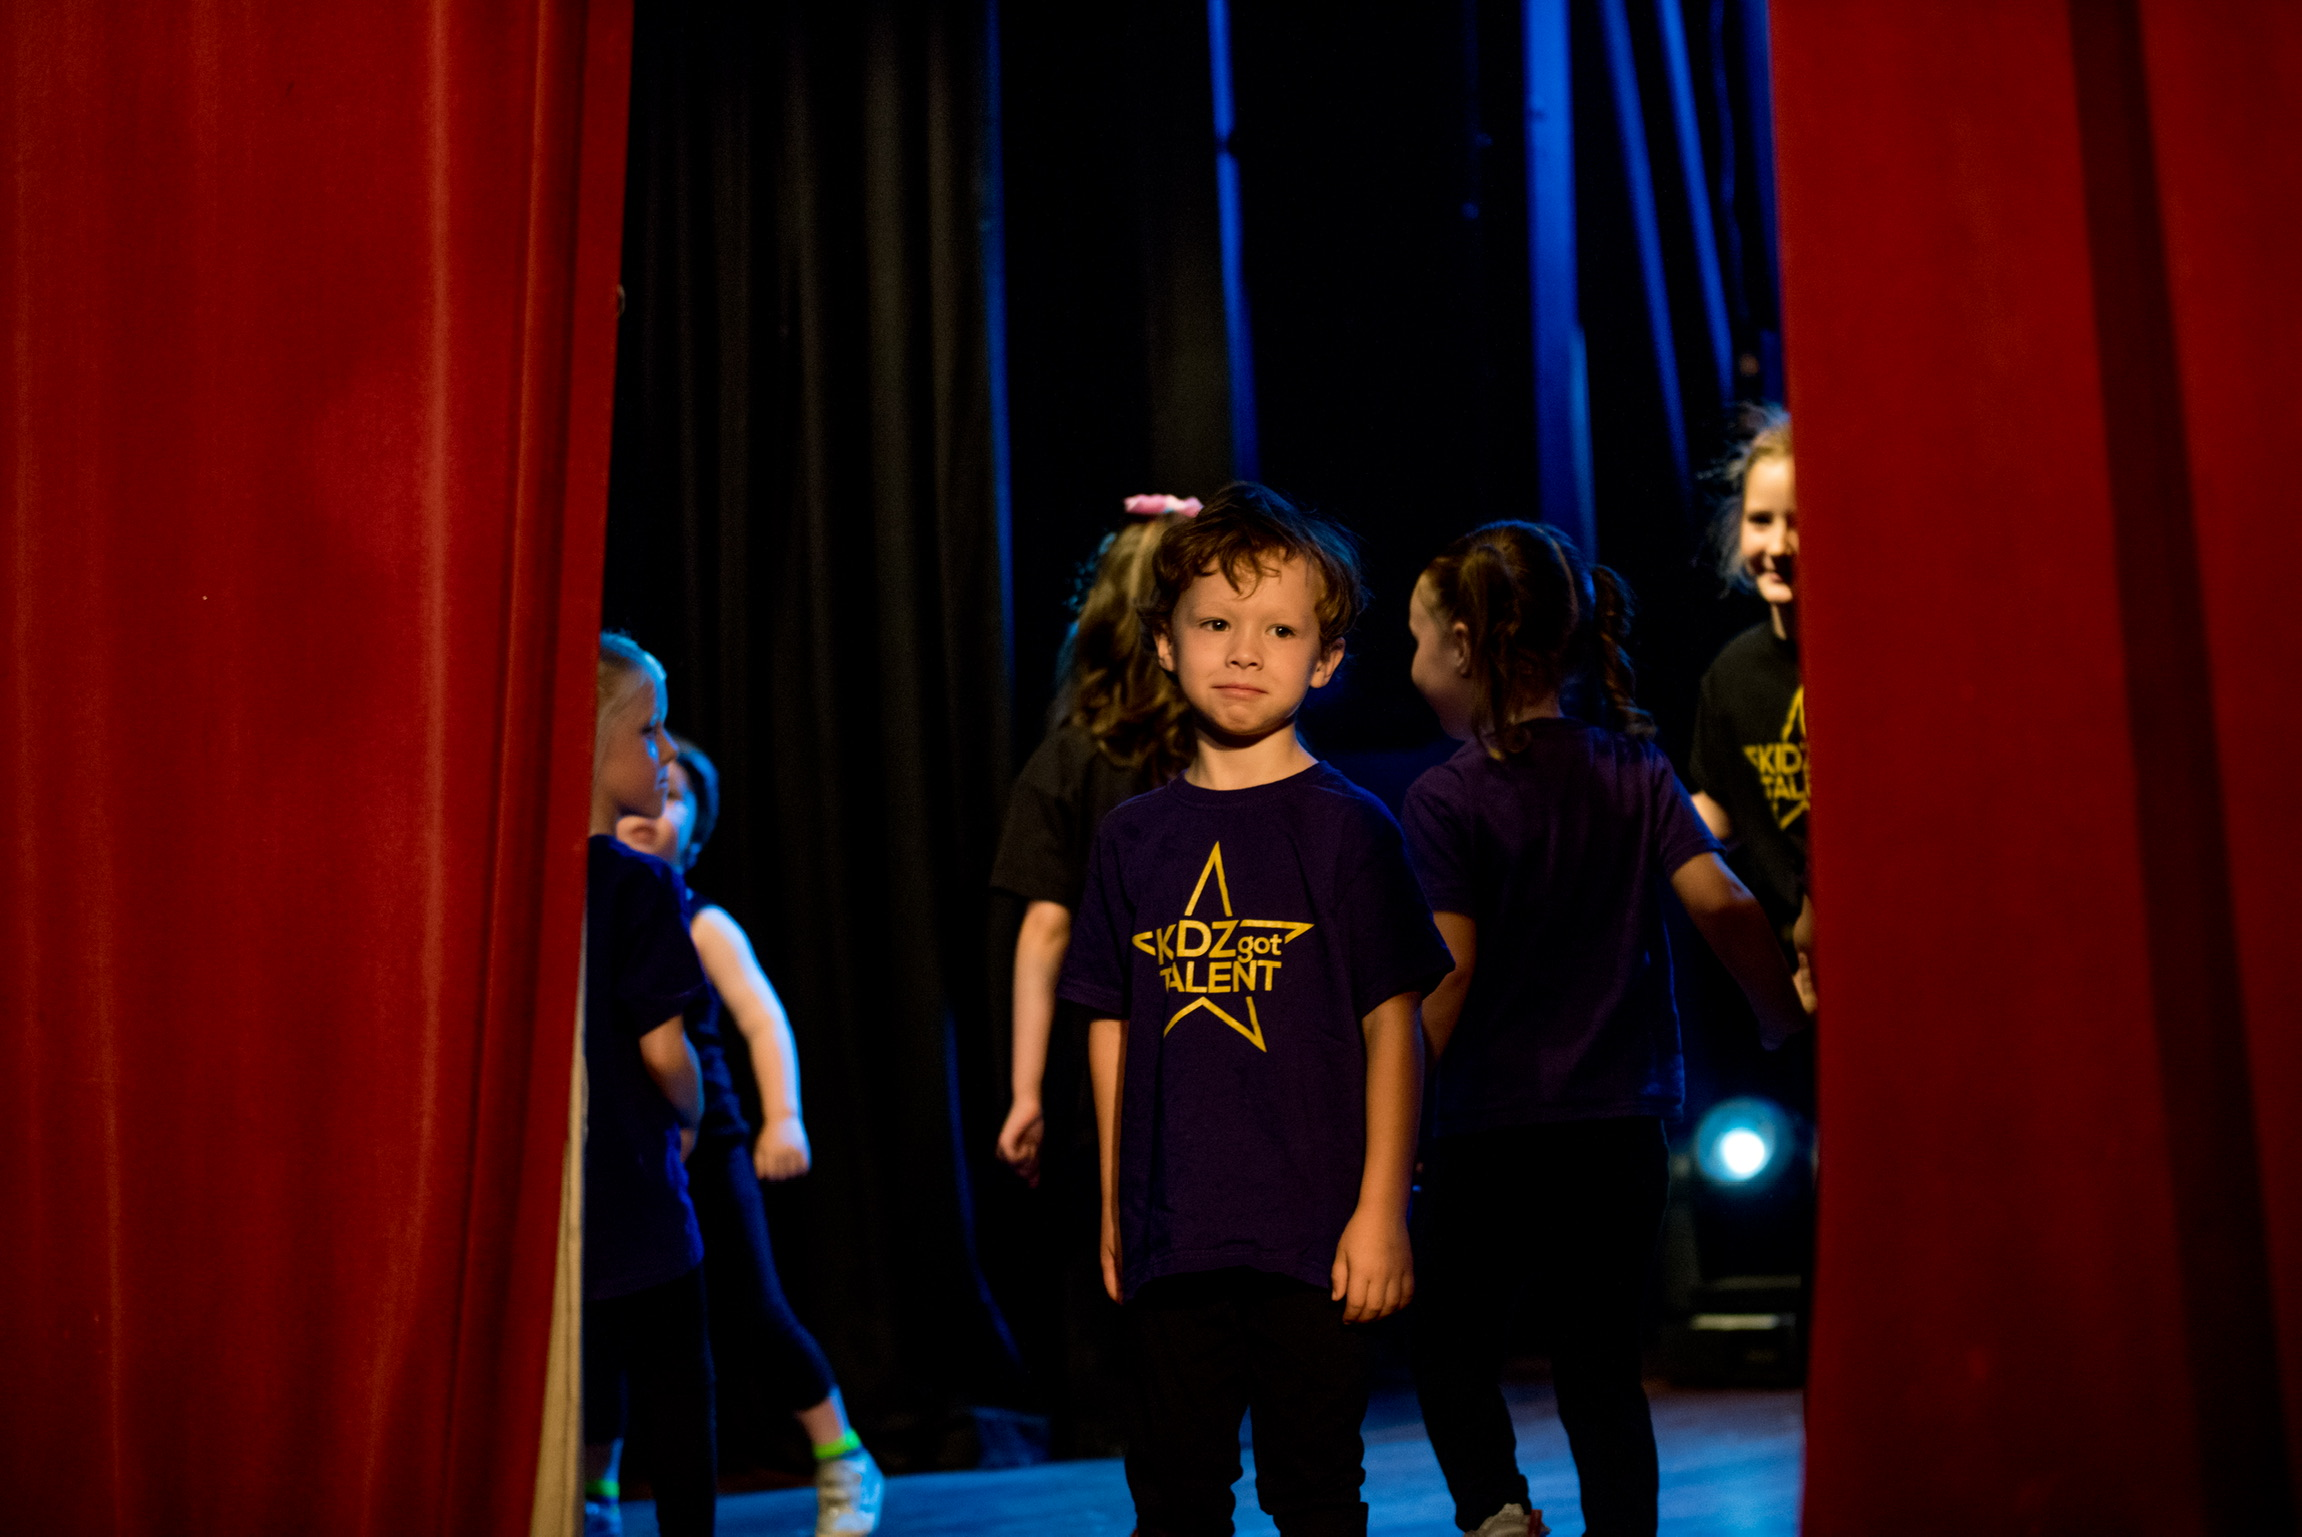 www.4dance.co.uk - We have branded leotards, shorts leggings, t-shirts, tracksuits, onesie and bags. Some of which are optional extras but the correct leotards and uniform must be worn according to the requirements of each class.4 Dance have a list of all our Uniform requirements but please do ask us if you have any questions.Online orders available